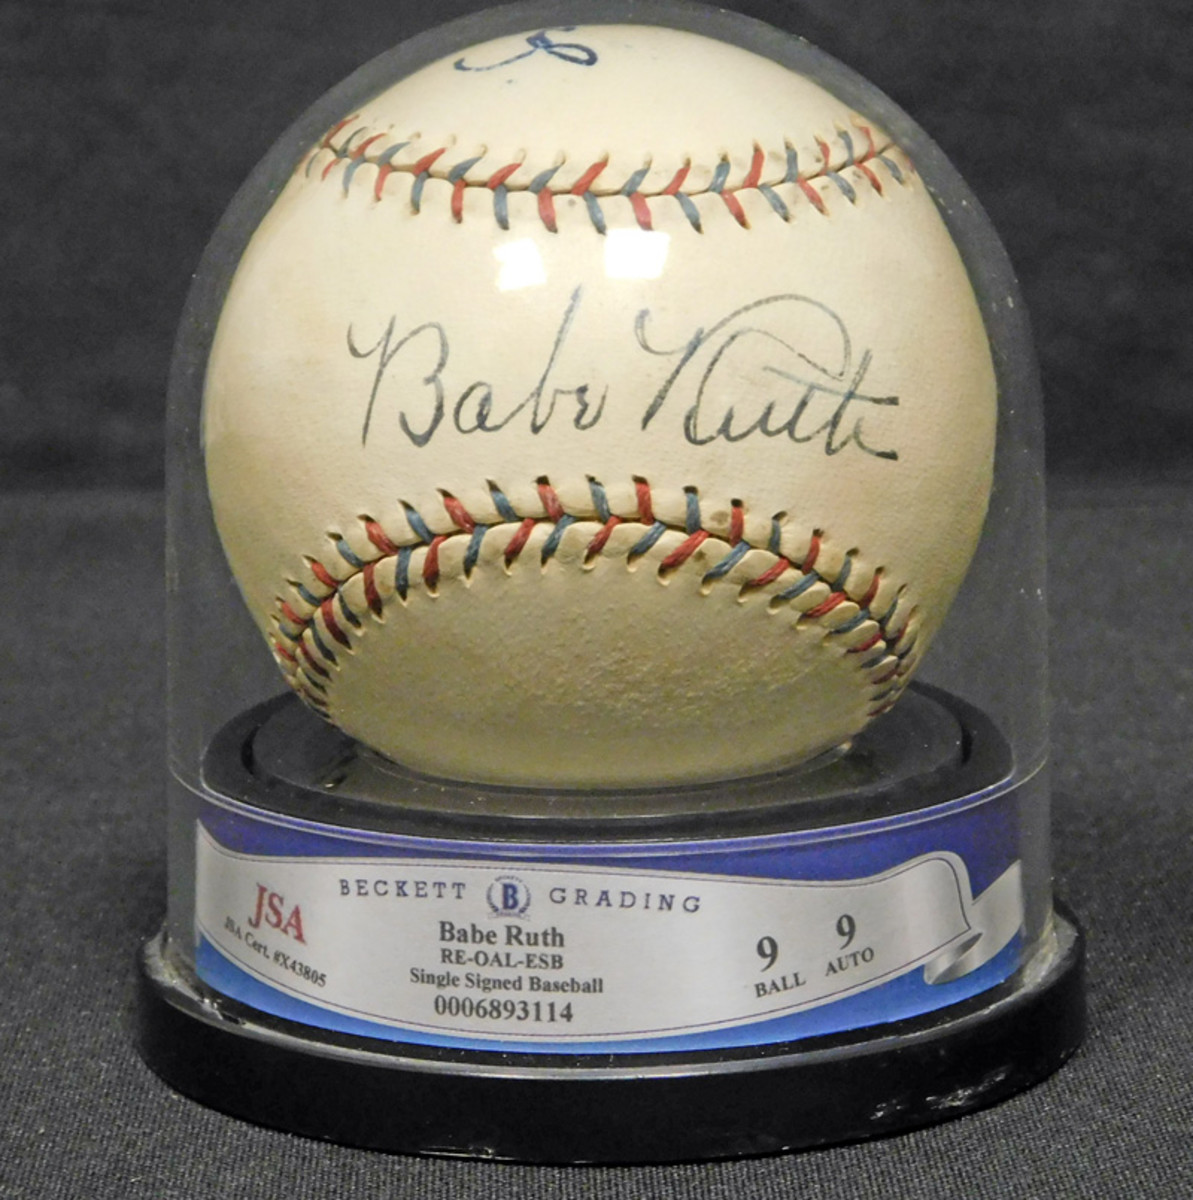 Babe Ruth-signed ball.